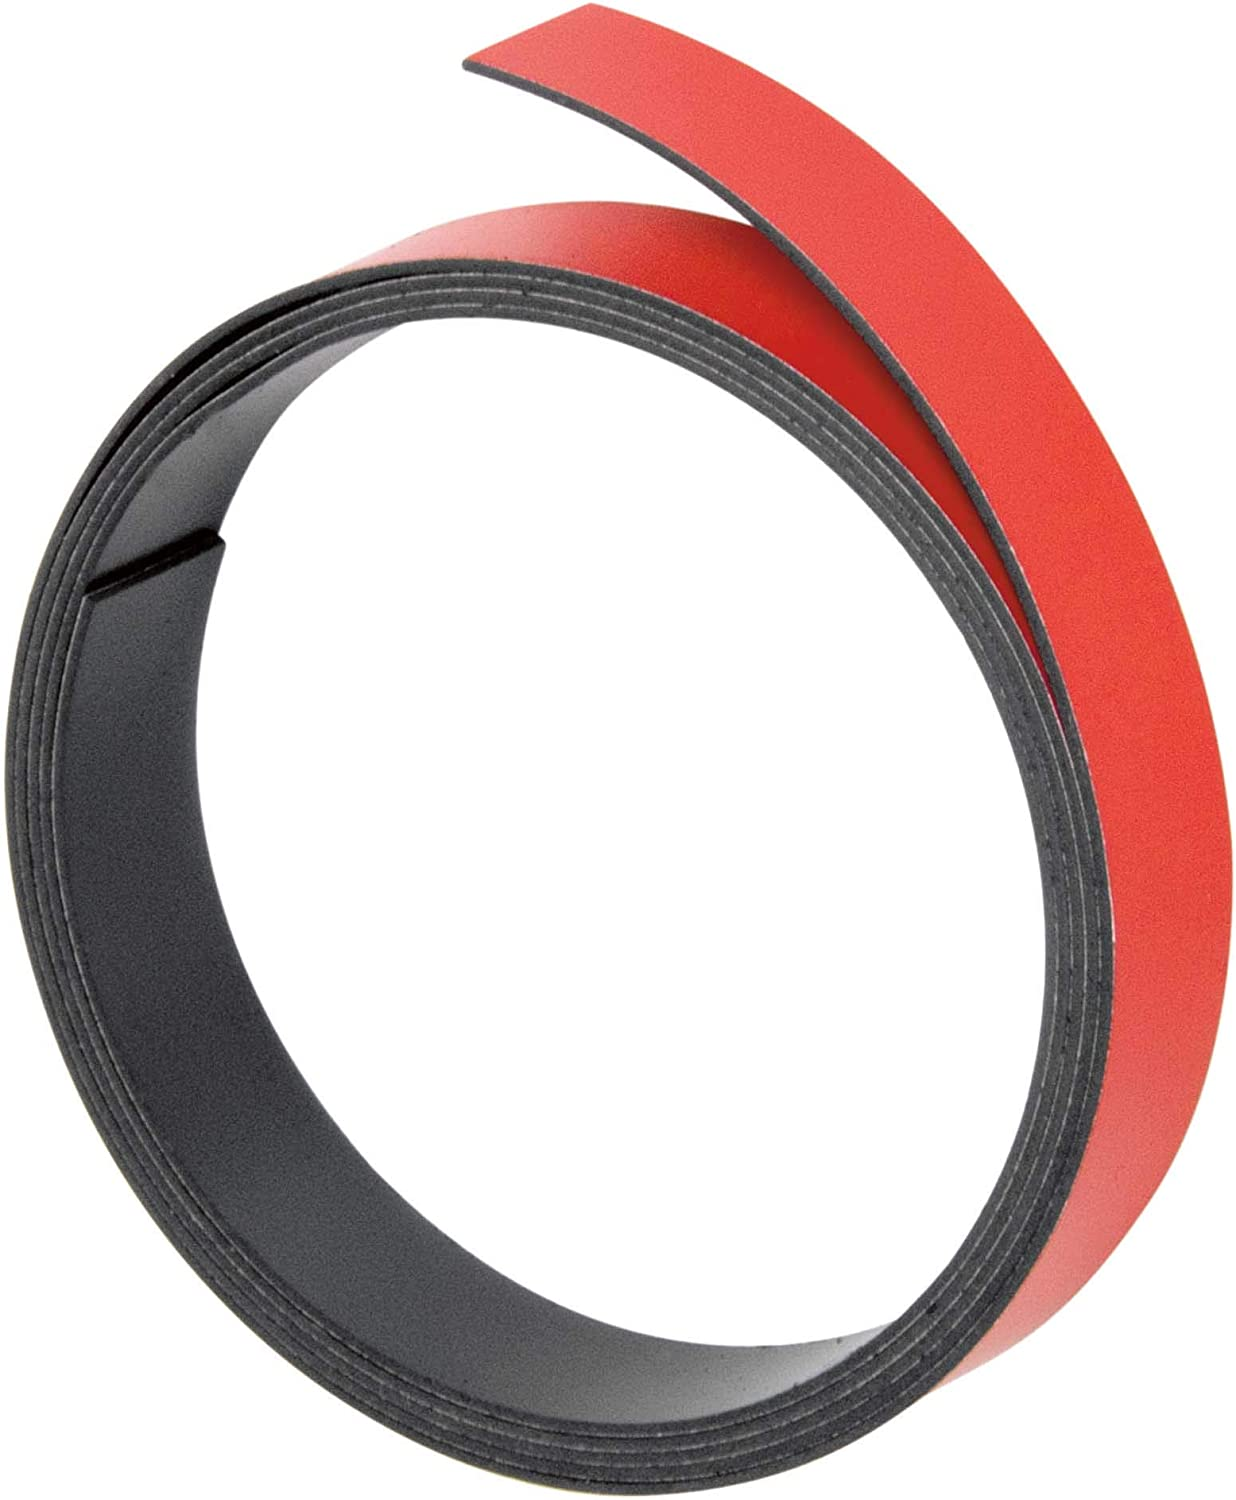 Franken Max 71% OFF M801-01 Magnetic Strips 5 Portland Mall mm Red x 1 m red